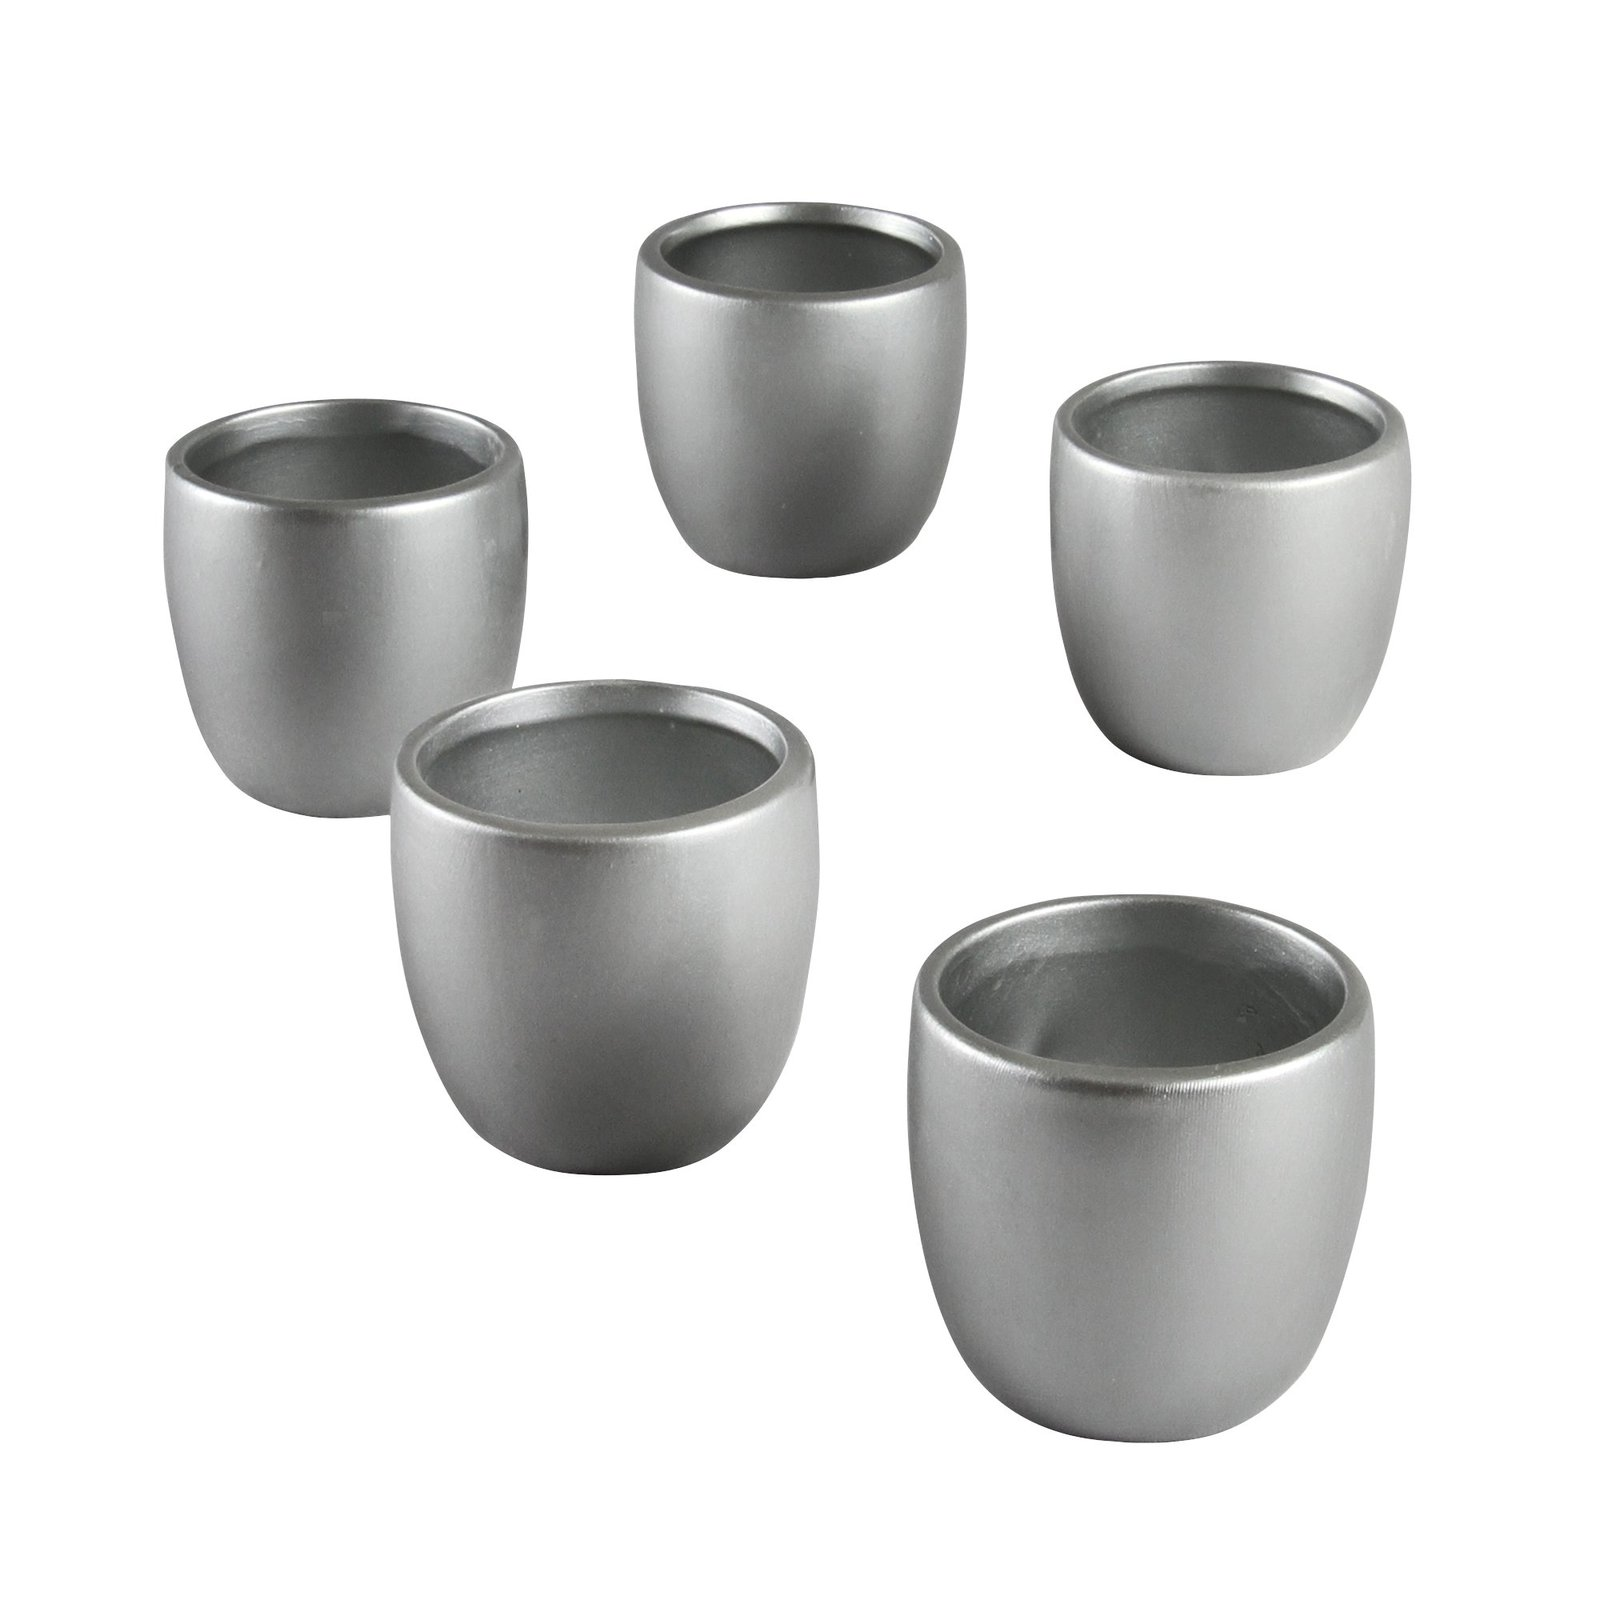 Ivy Lane Design Smooth Round Favor Flower Pot, Silver, Set of 5